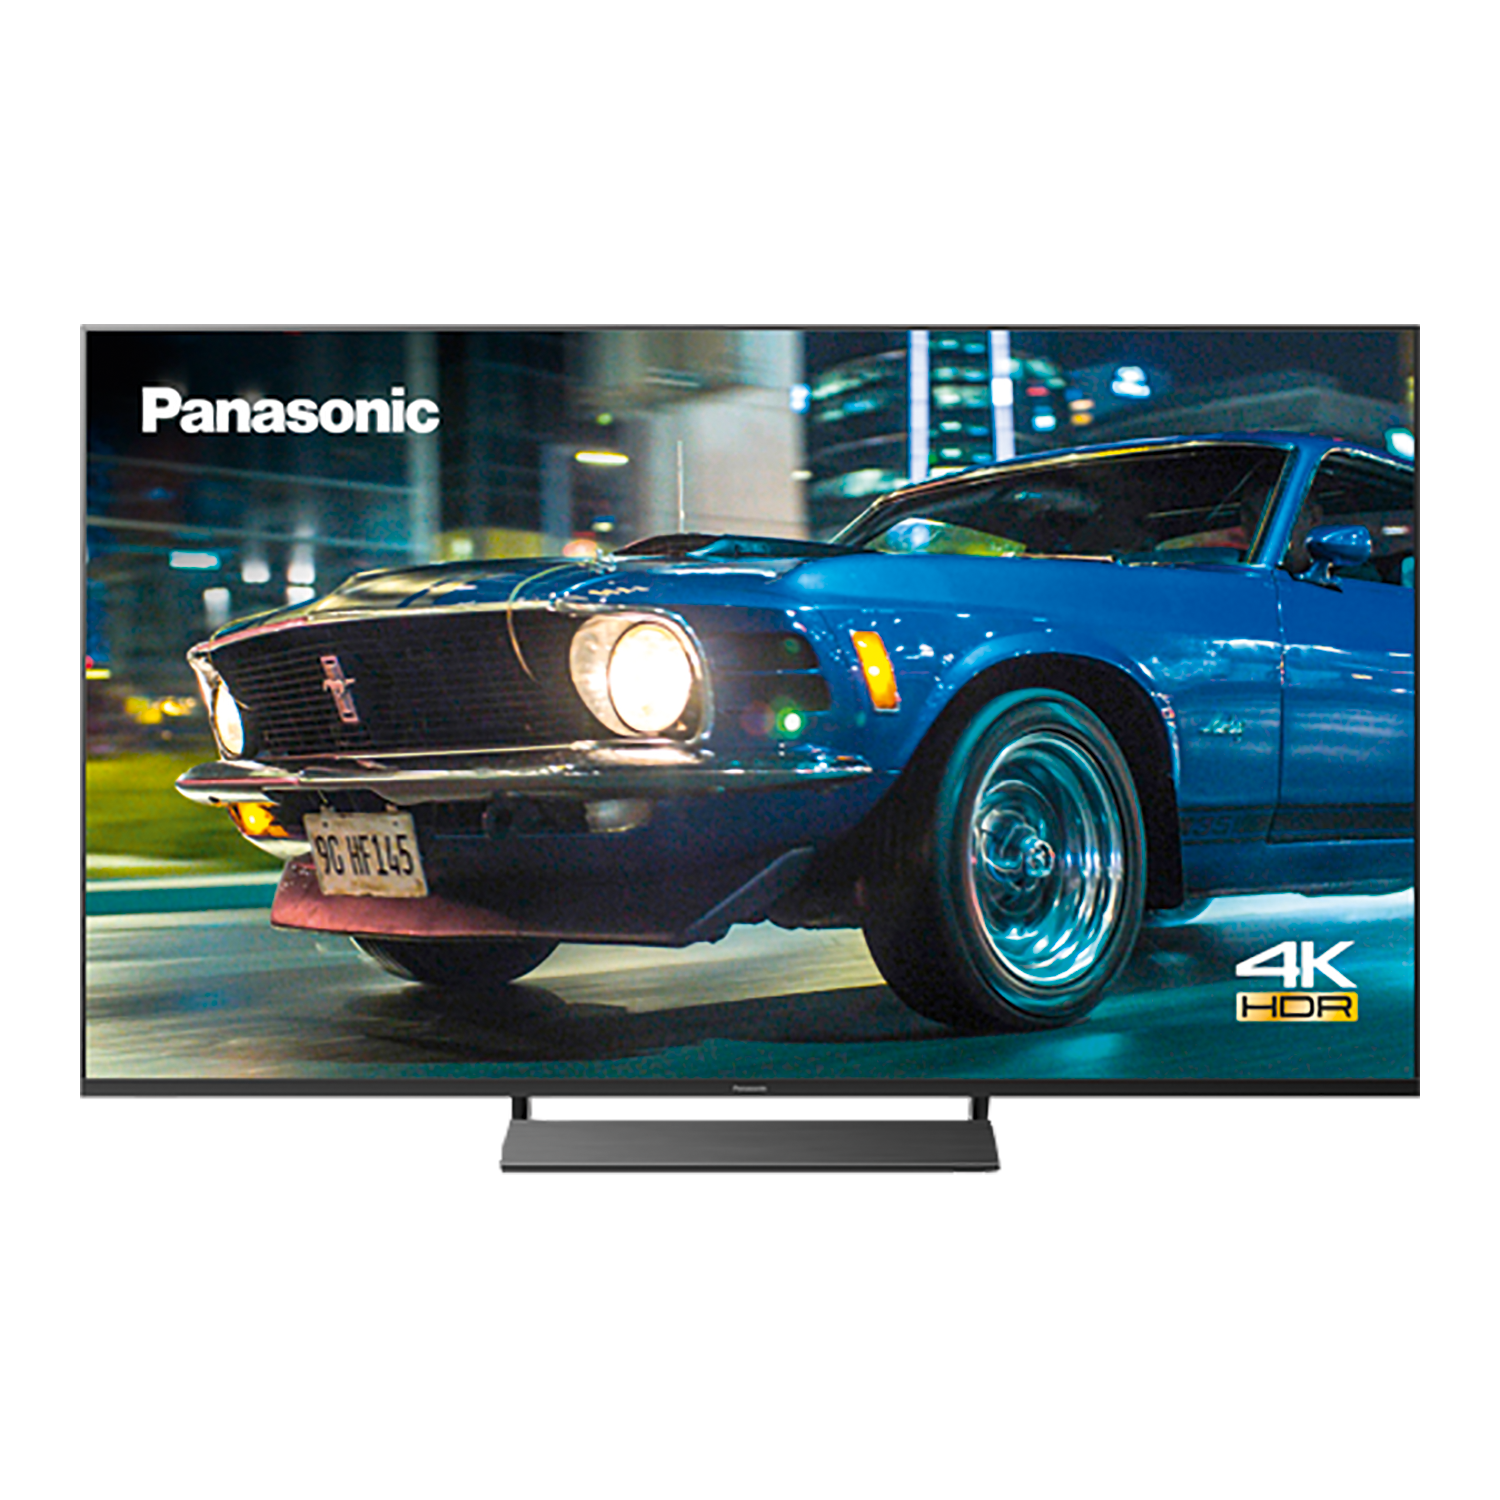 Panasonic TX-50HXW804 4K Ultra HD HDR LED Smart TV, 50″, Schwarz